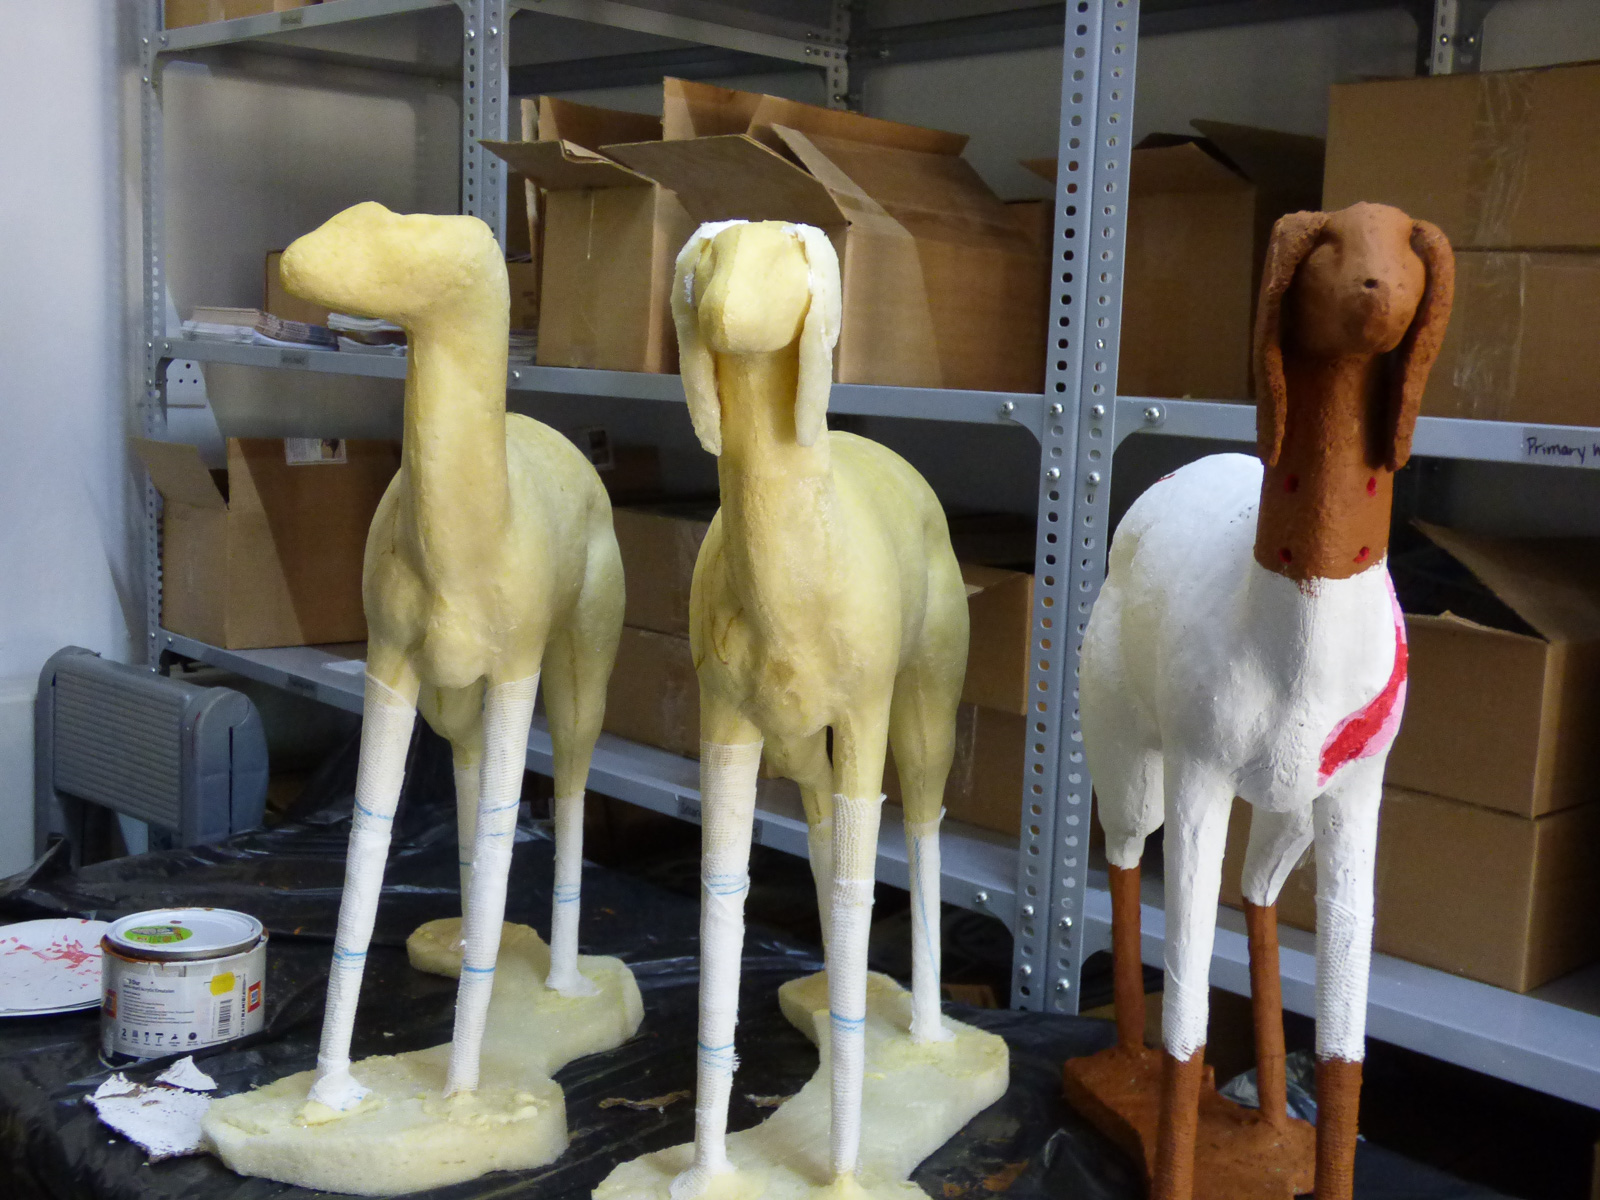 Goats in various stages of development